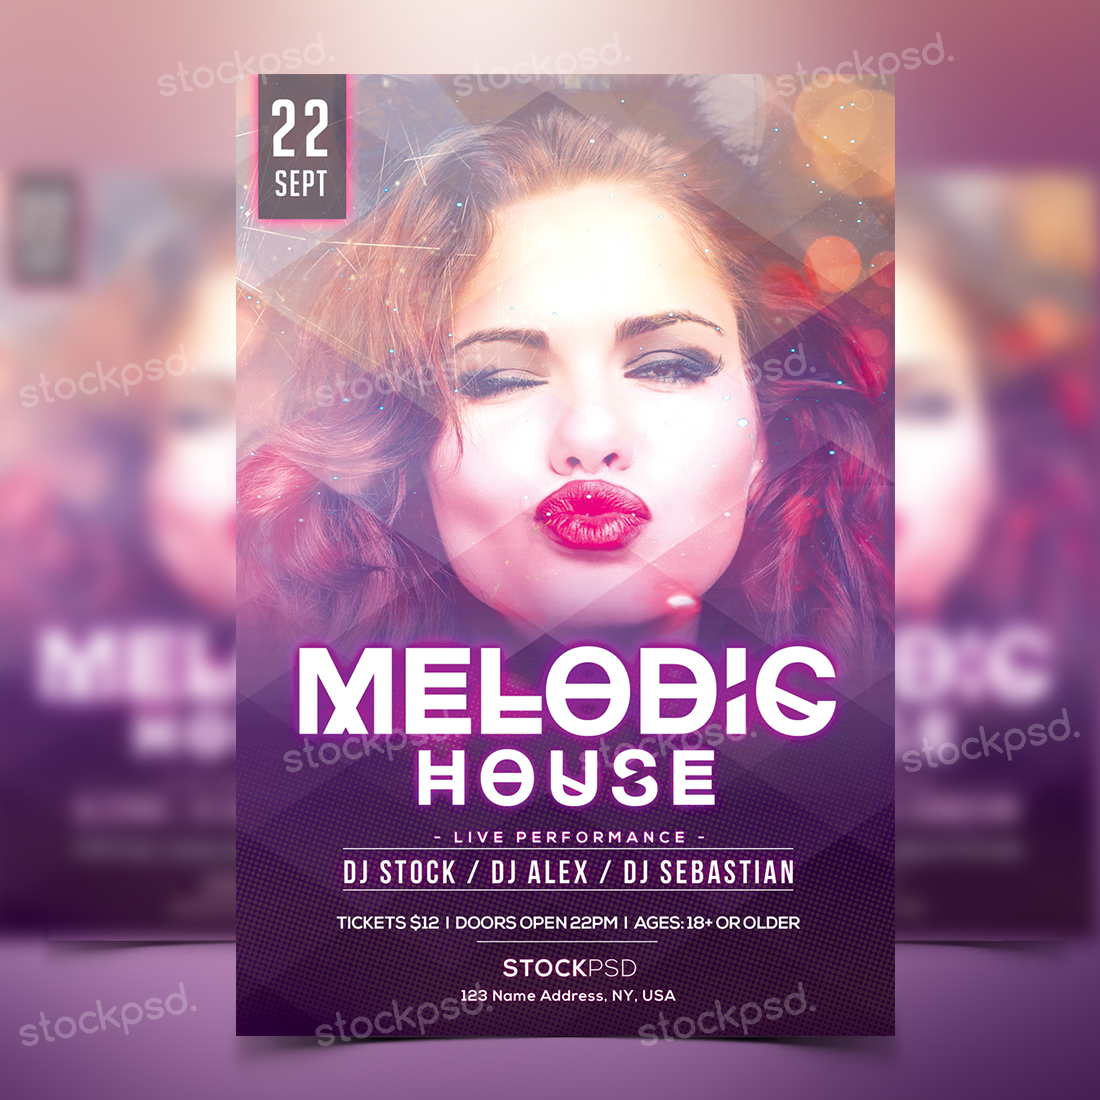 Stockpsd.net | Melodic House - Free Party PSD Flyer Template ...